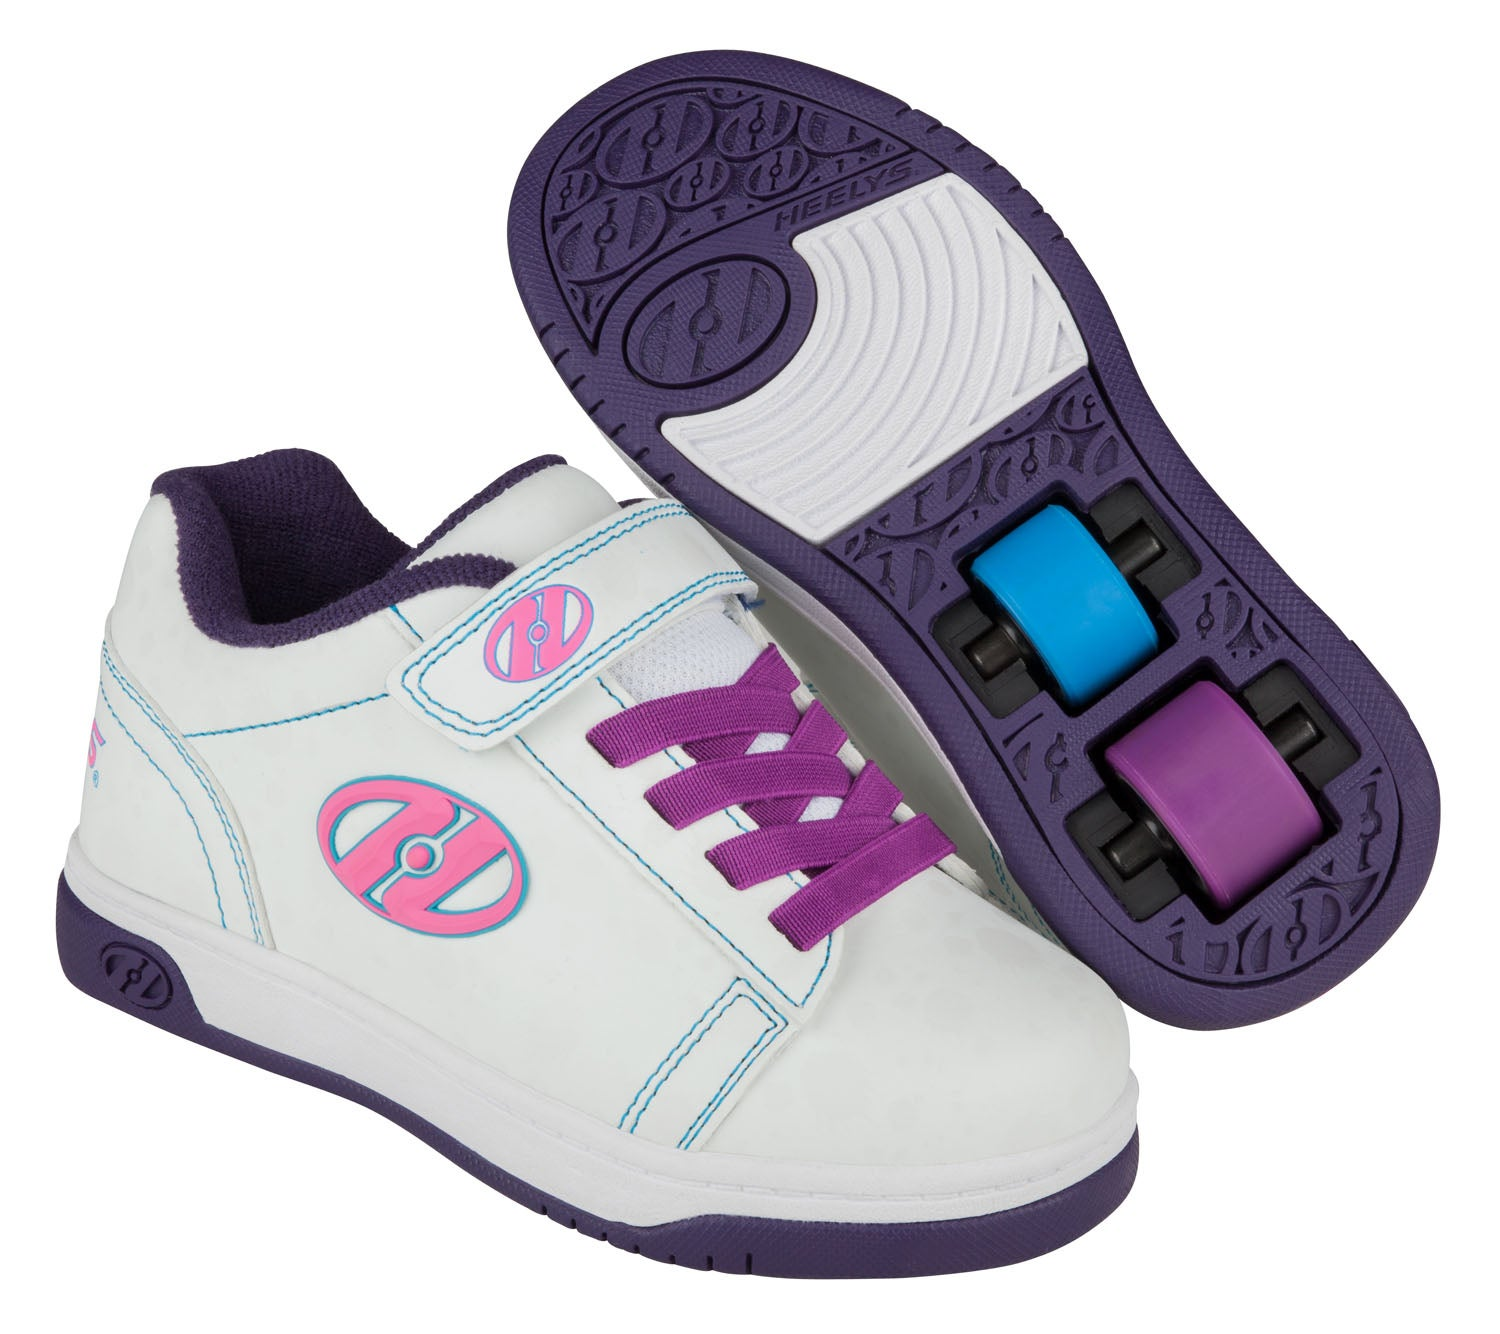 2020 36 Heelys Wheels Retract 1 Degrees Enjector Black White Women's 361 Degrees Shoes